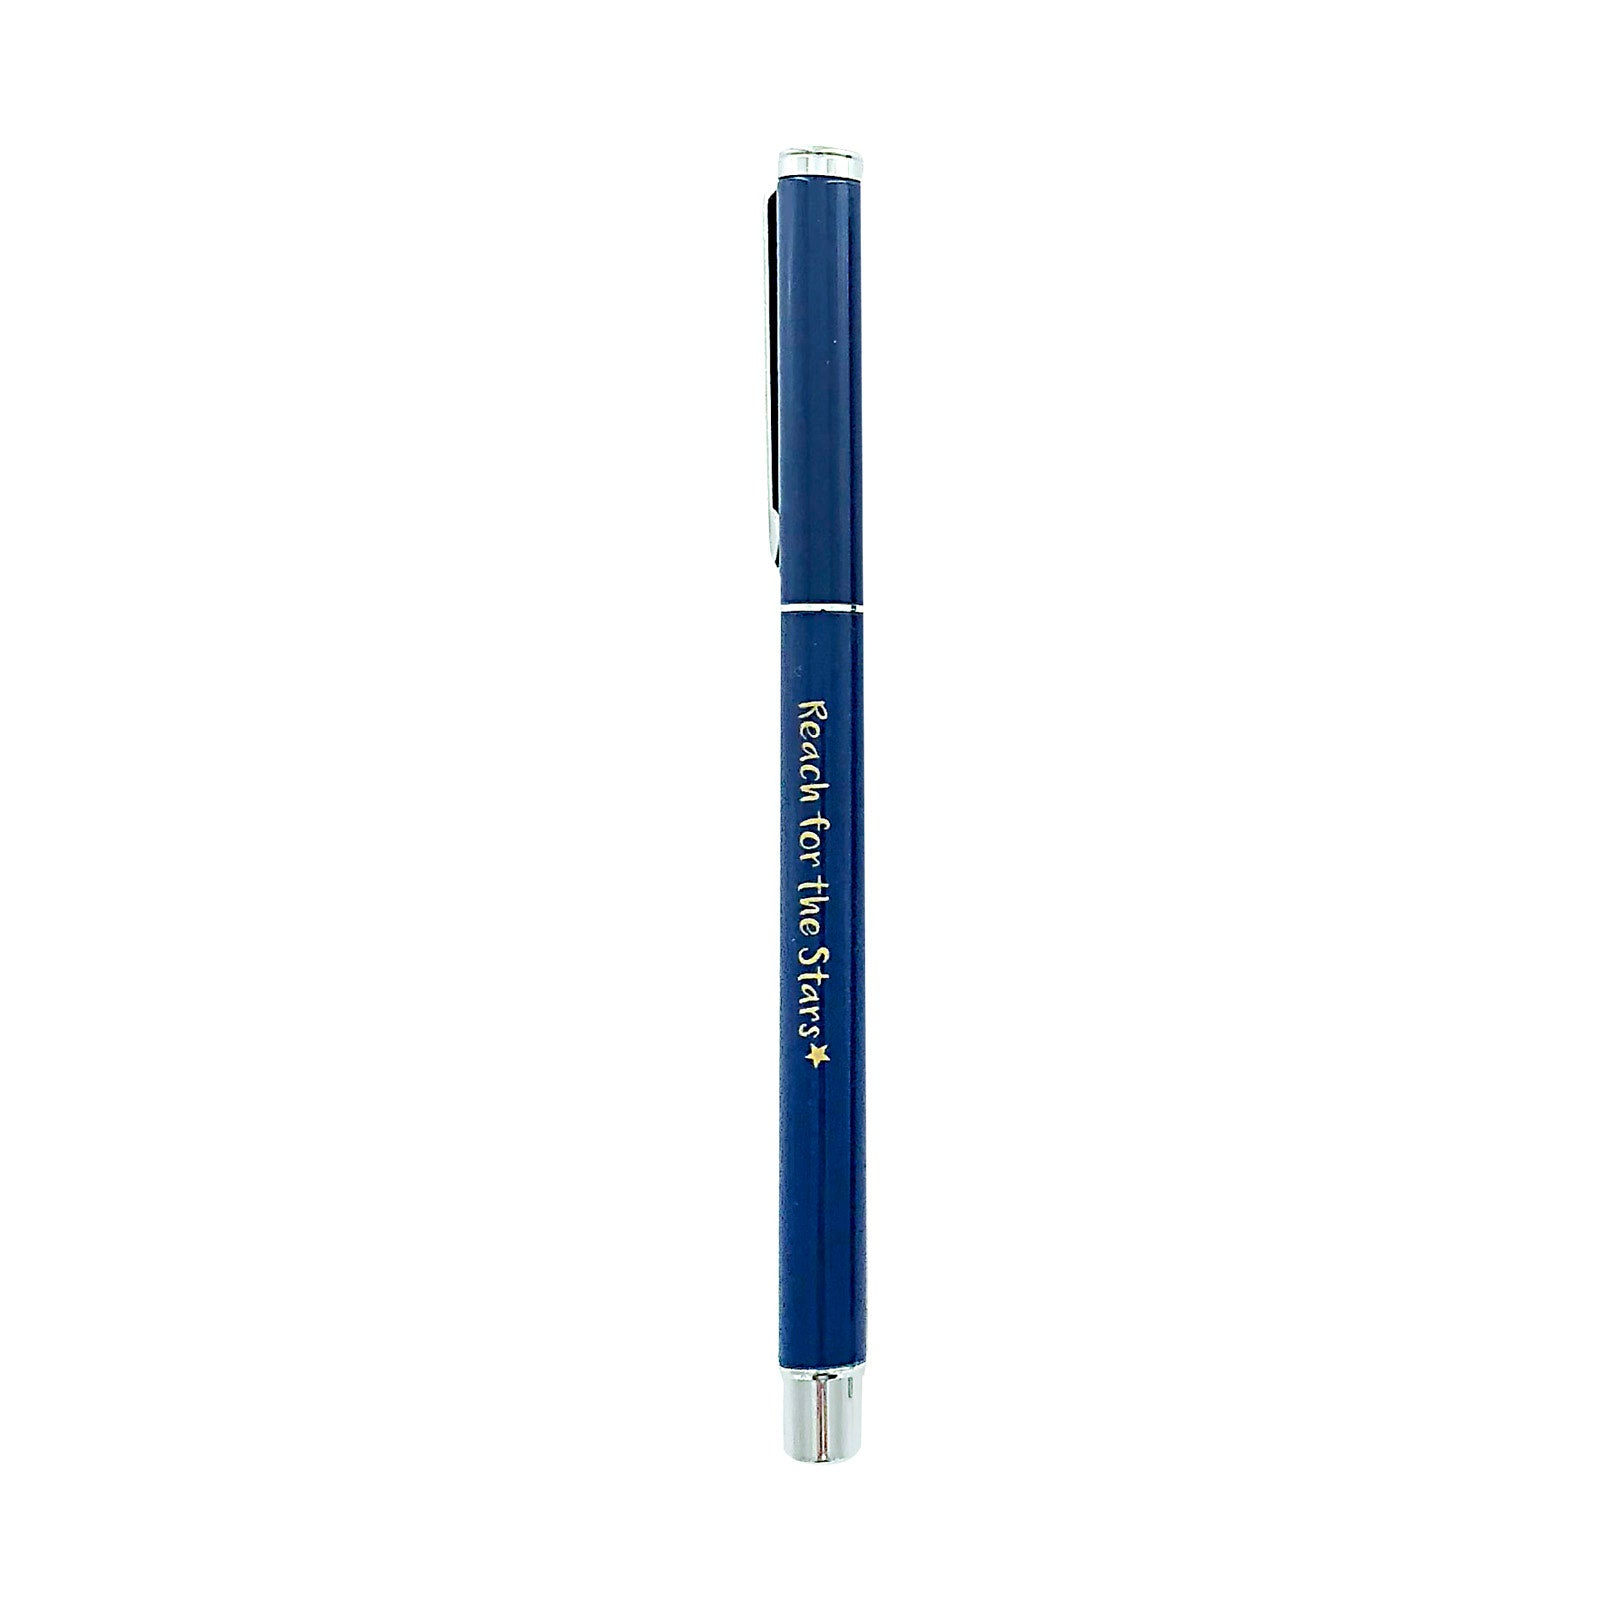 Metal Pen - Reach For The Stars - Navy Blue